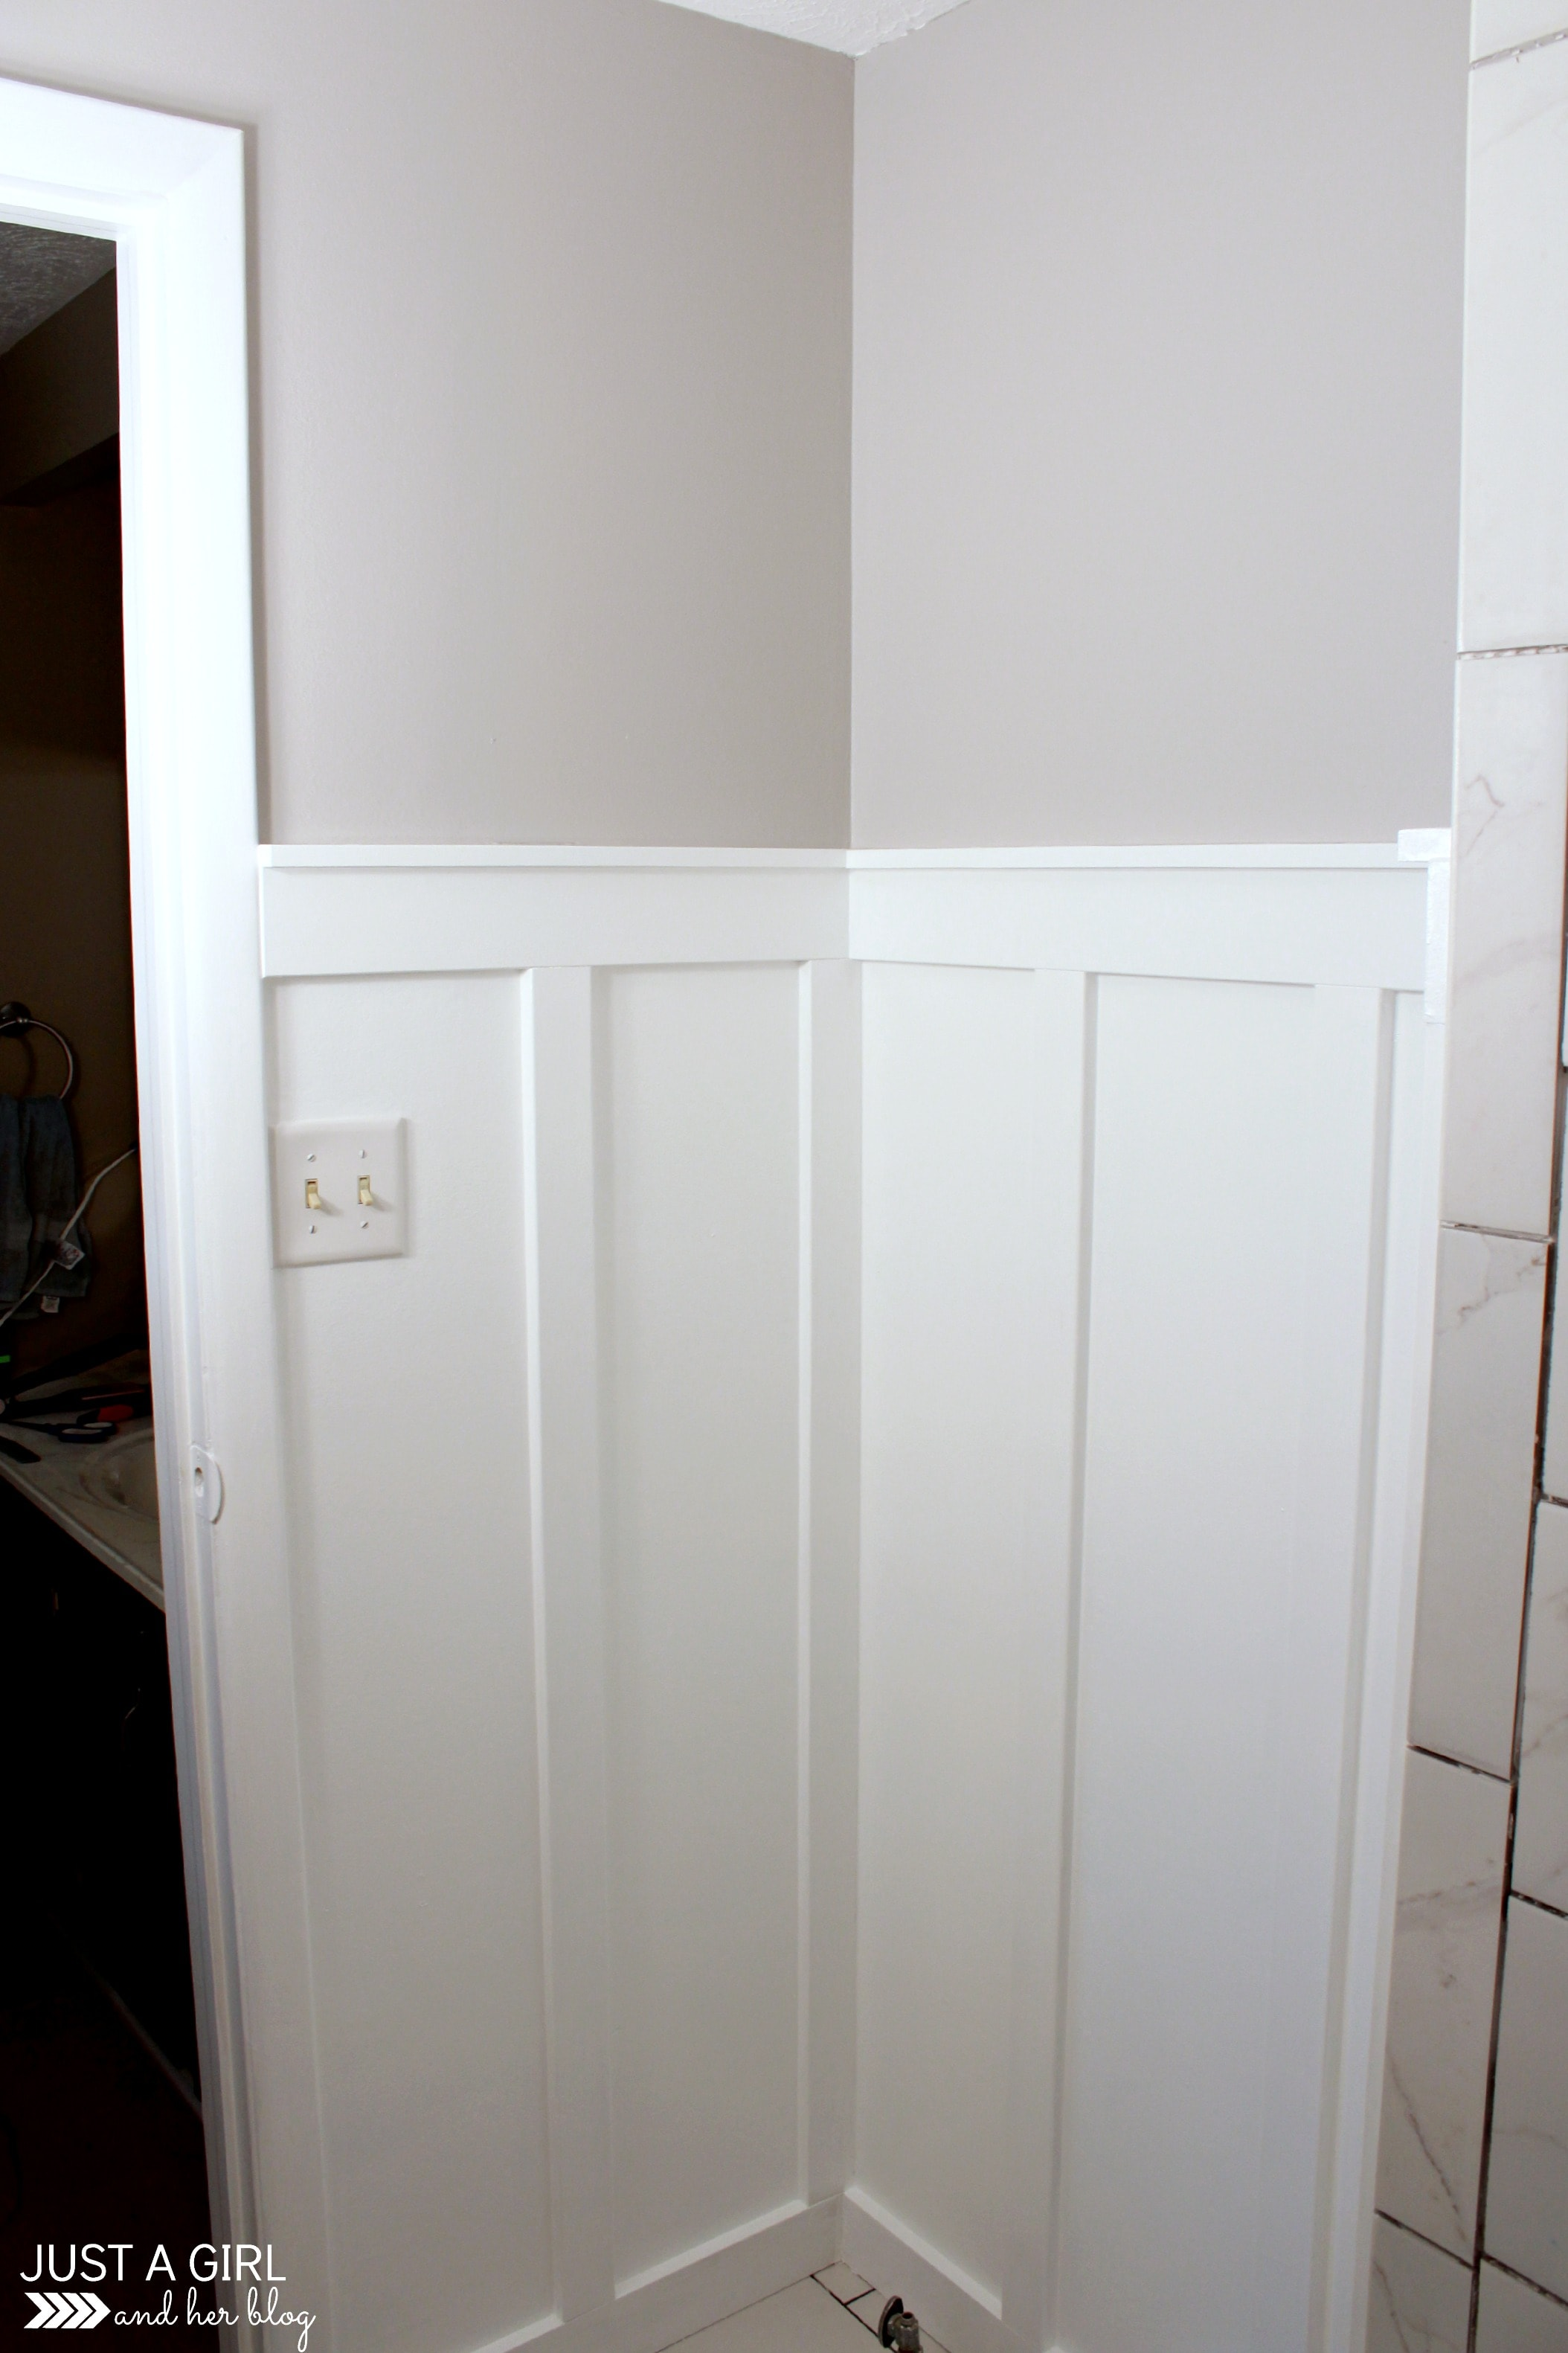 Board And Batten Bathroom. How To Install Board And Batten In A Small Space Master Bathroom Update Just A Girl And Her Blog